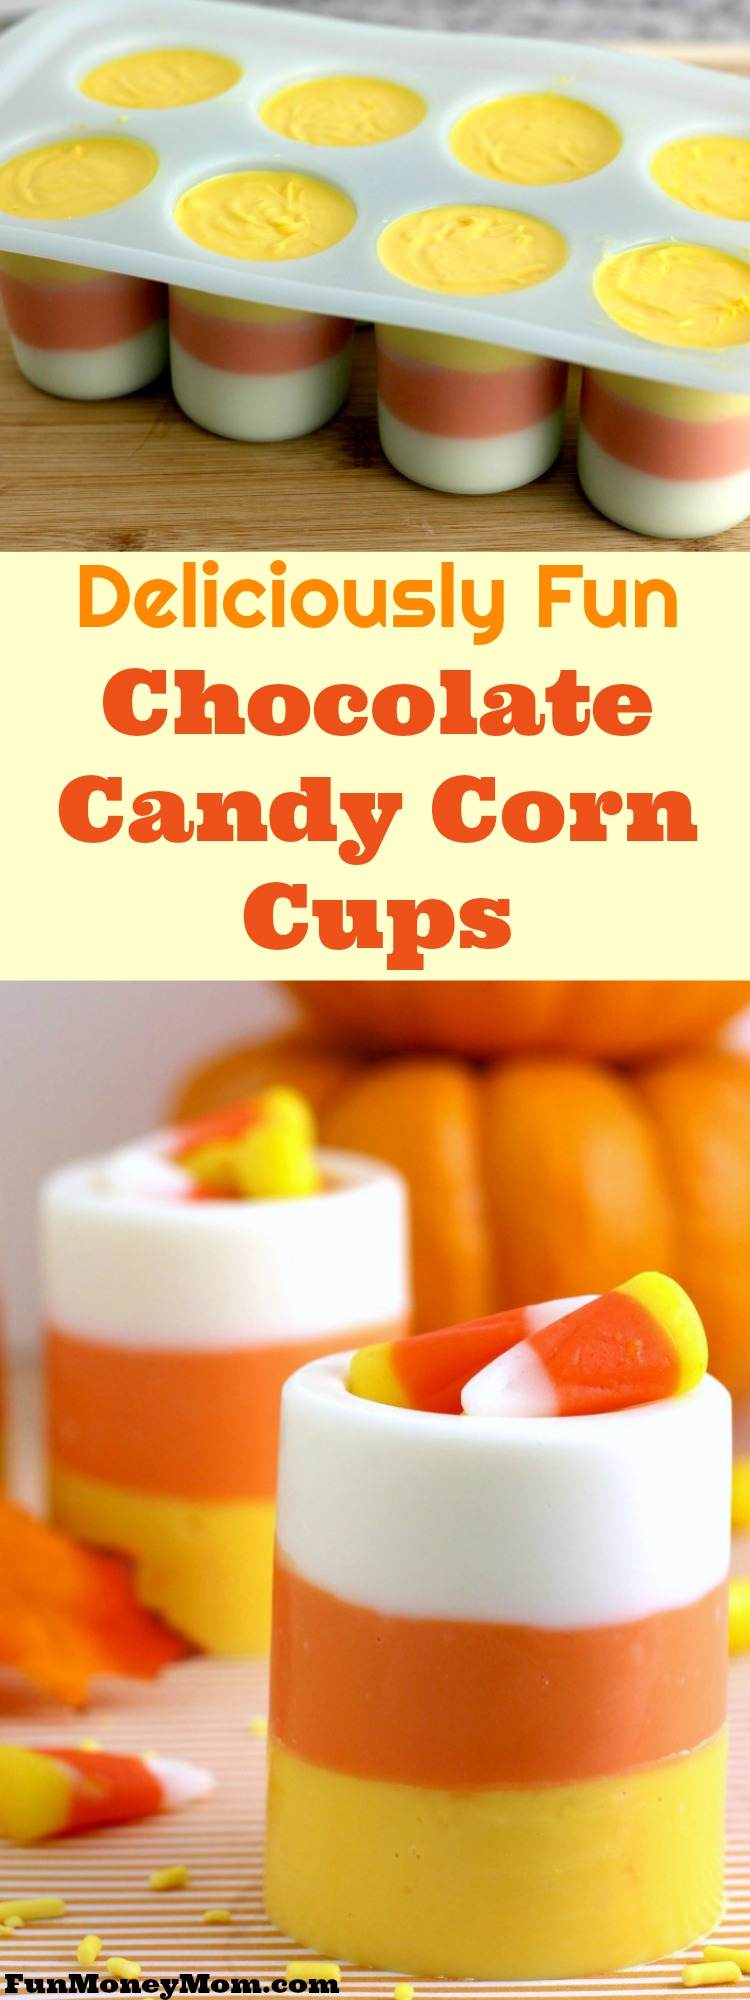 Why not treat your friends for Halloween? These chocolate candy corn cups make a delicious Halloween dessert that everybody will love!